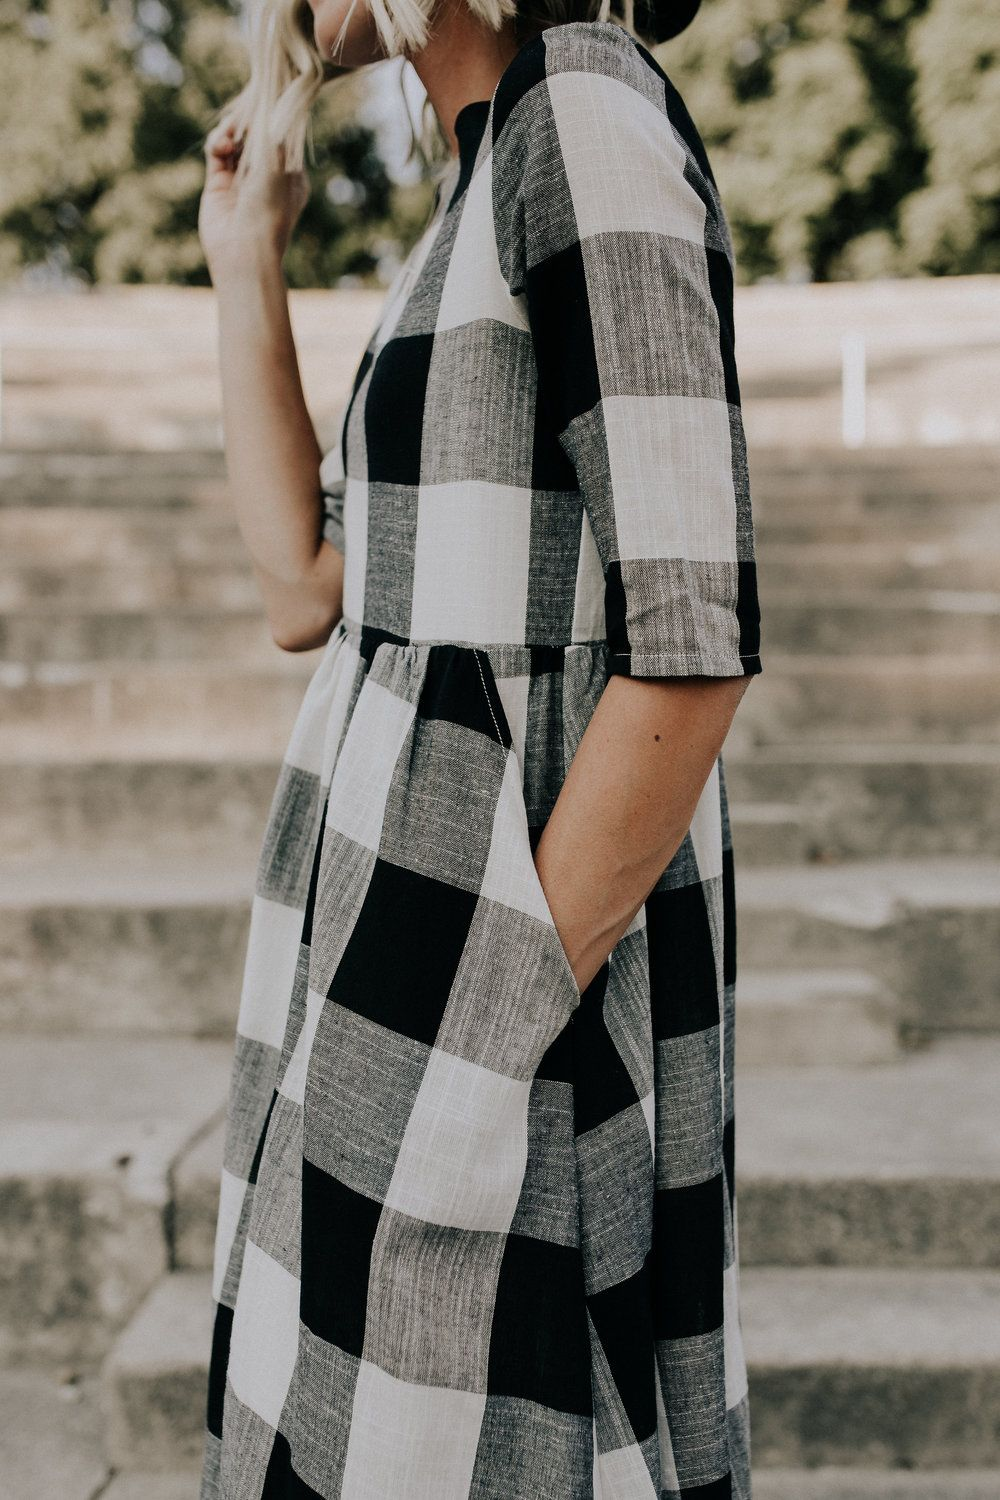 Maddie Buffalo Plaid Dress In 2020 Buffalo Plaid Dress Winter Fashion Outfits Plaid Dress Outfit